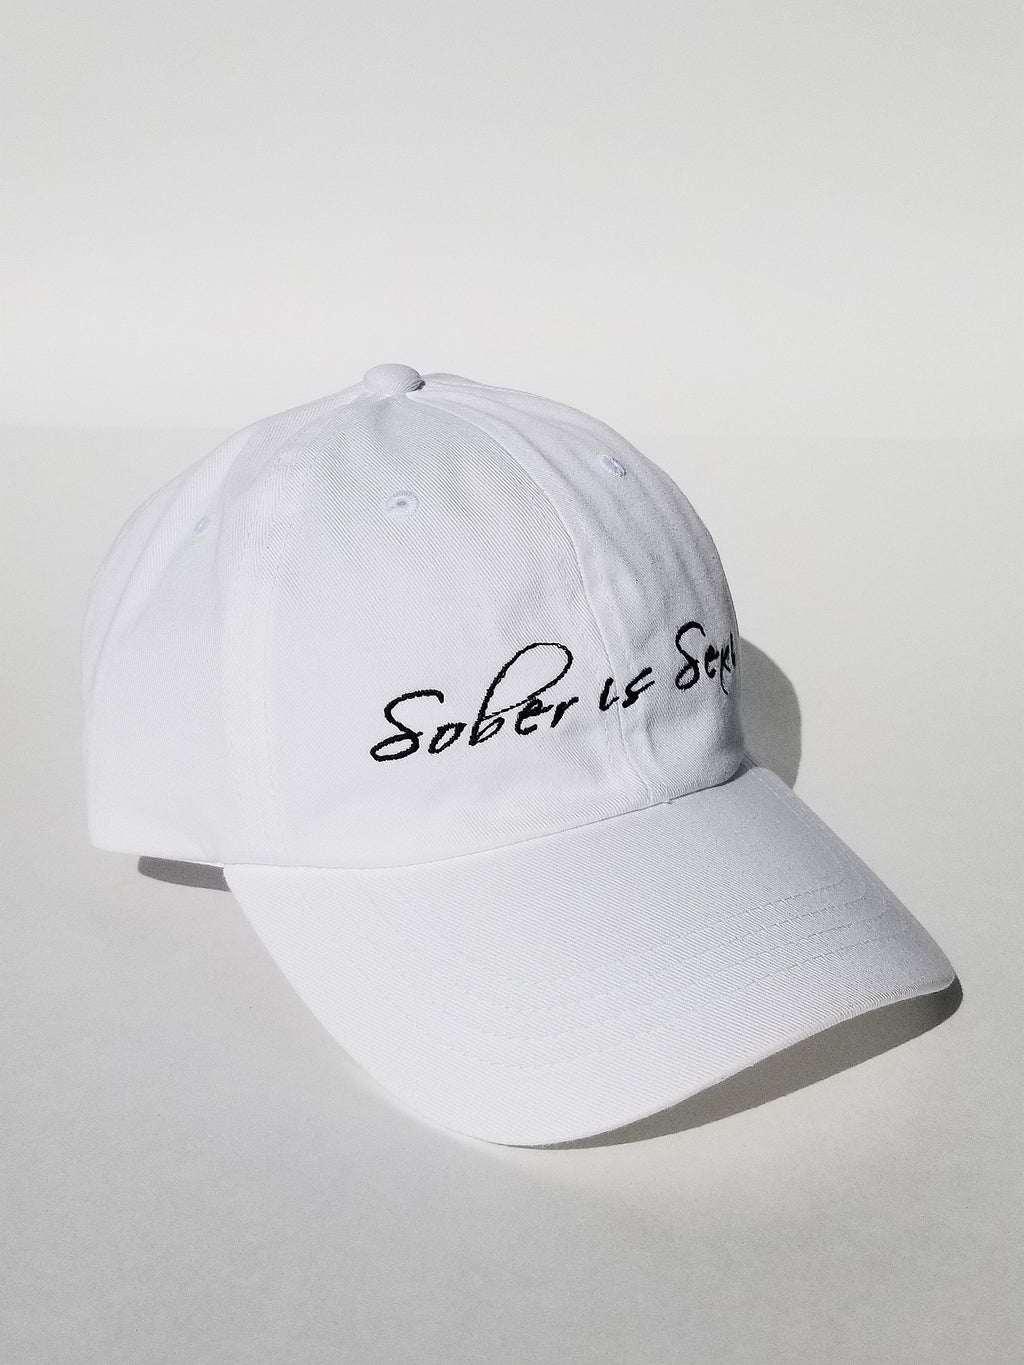 Sober is Sexi Dad Hat